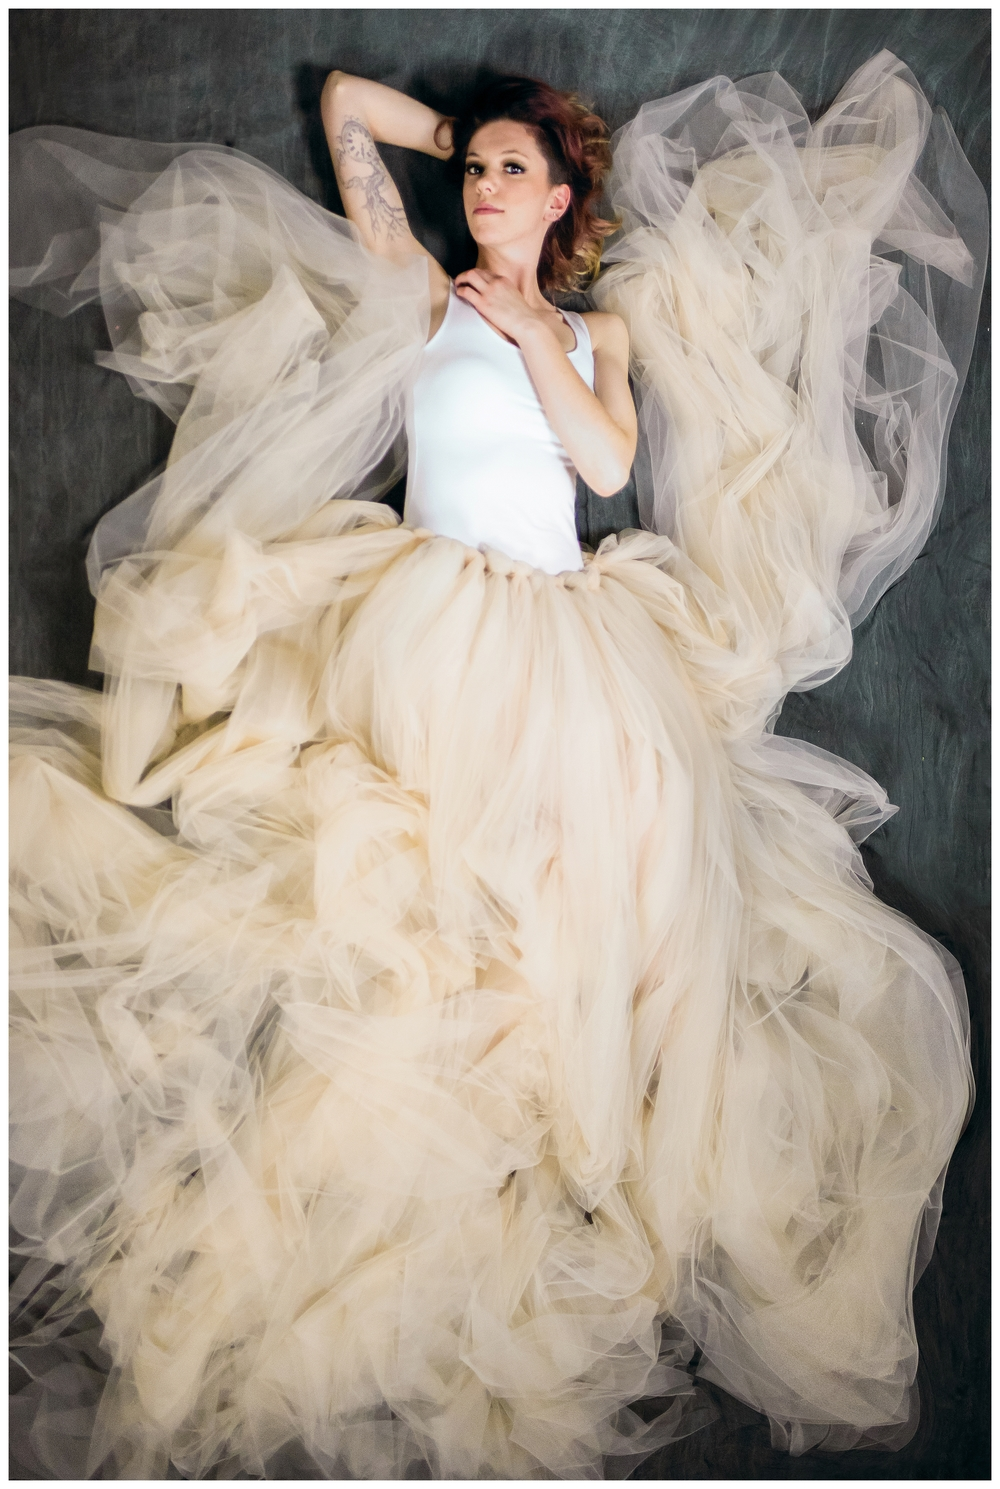 San Diego Beauty Portraits | Tulle Skirt | Ernie & Fiona Photography